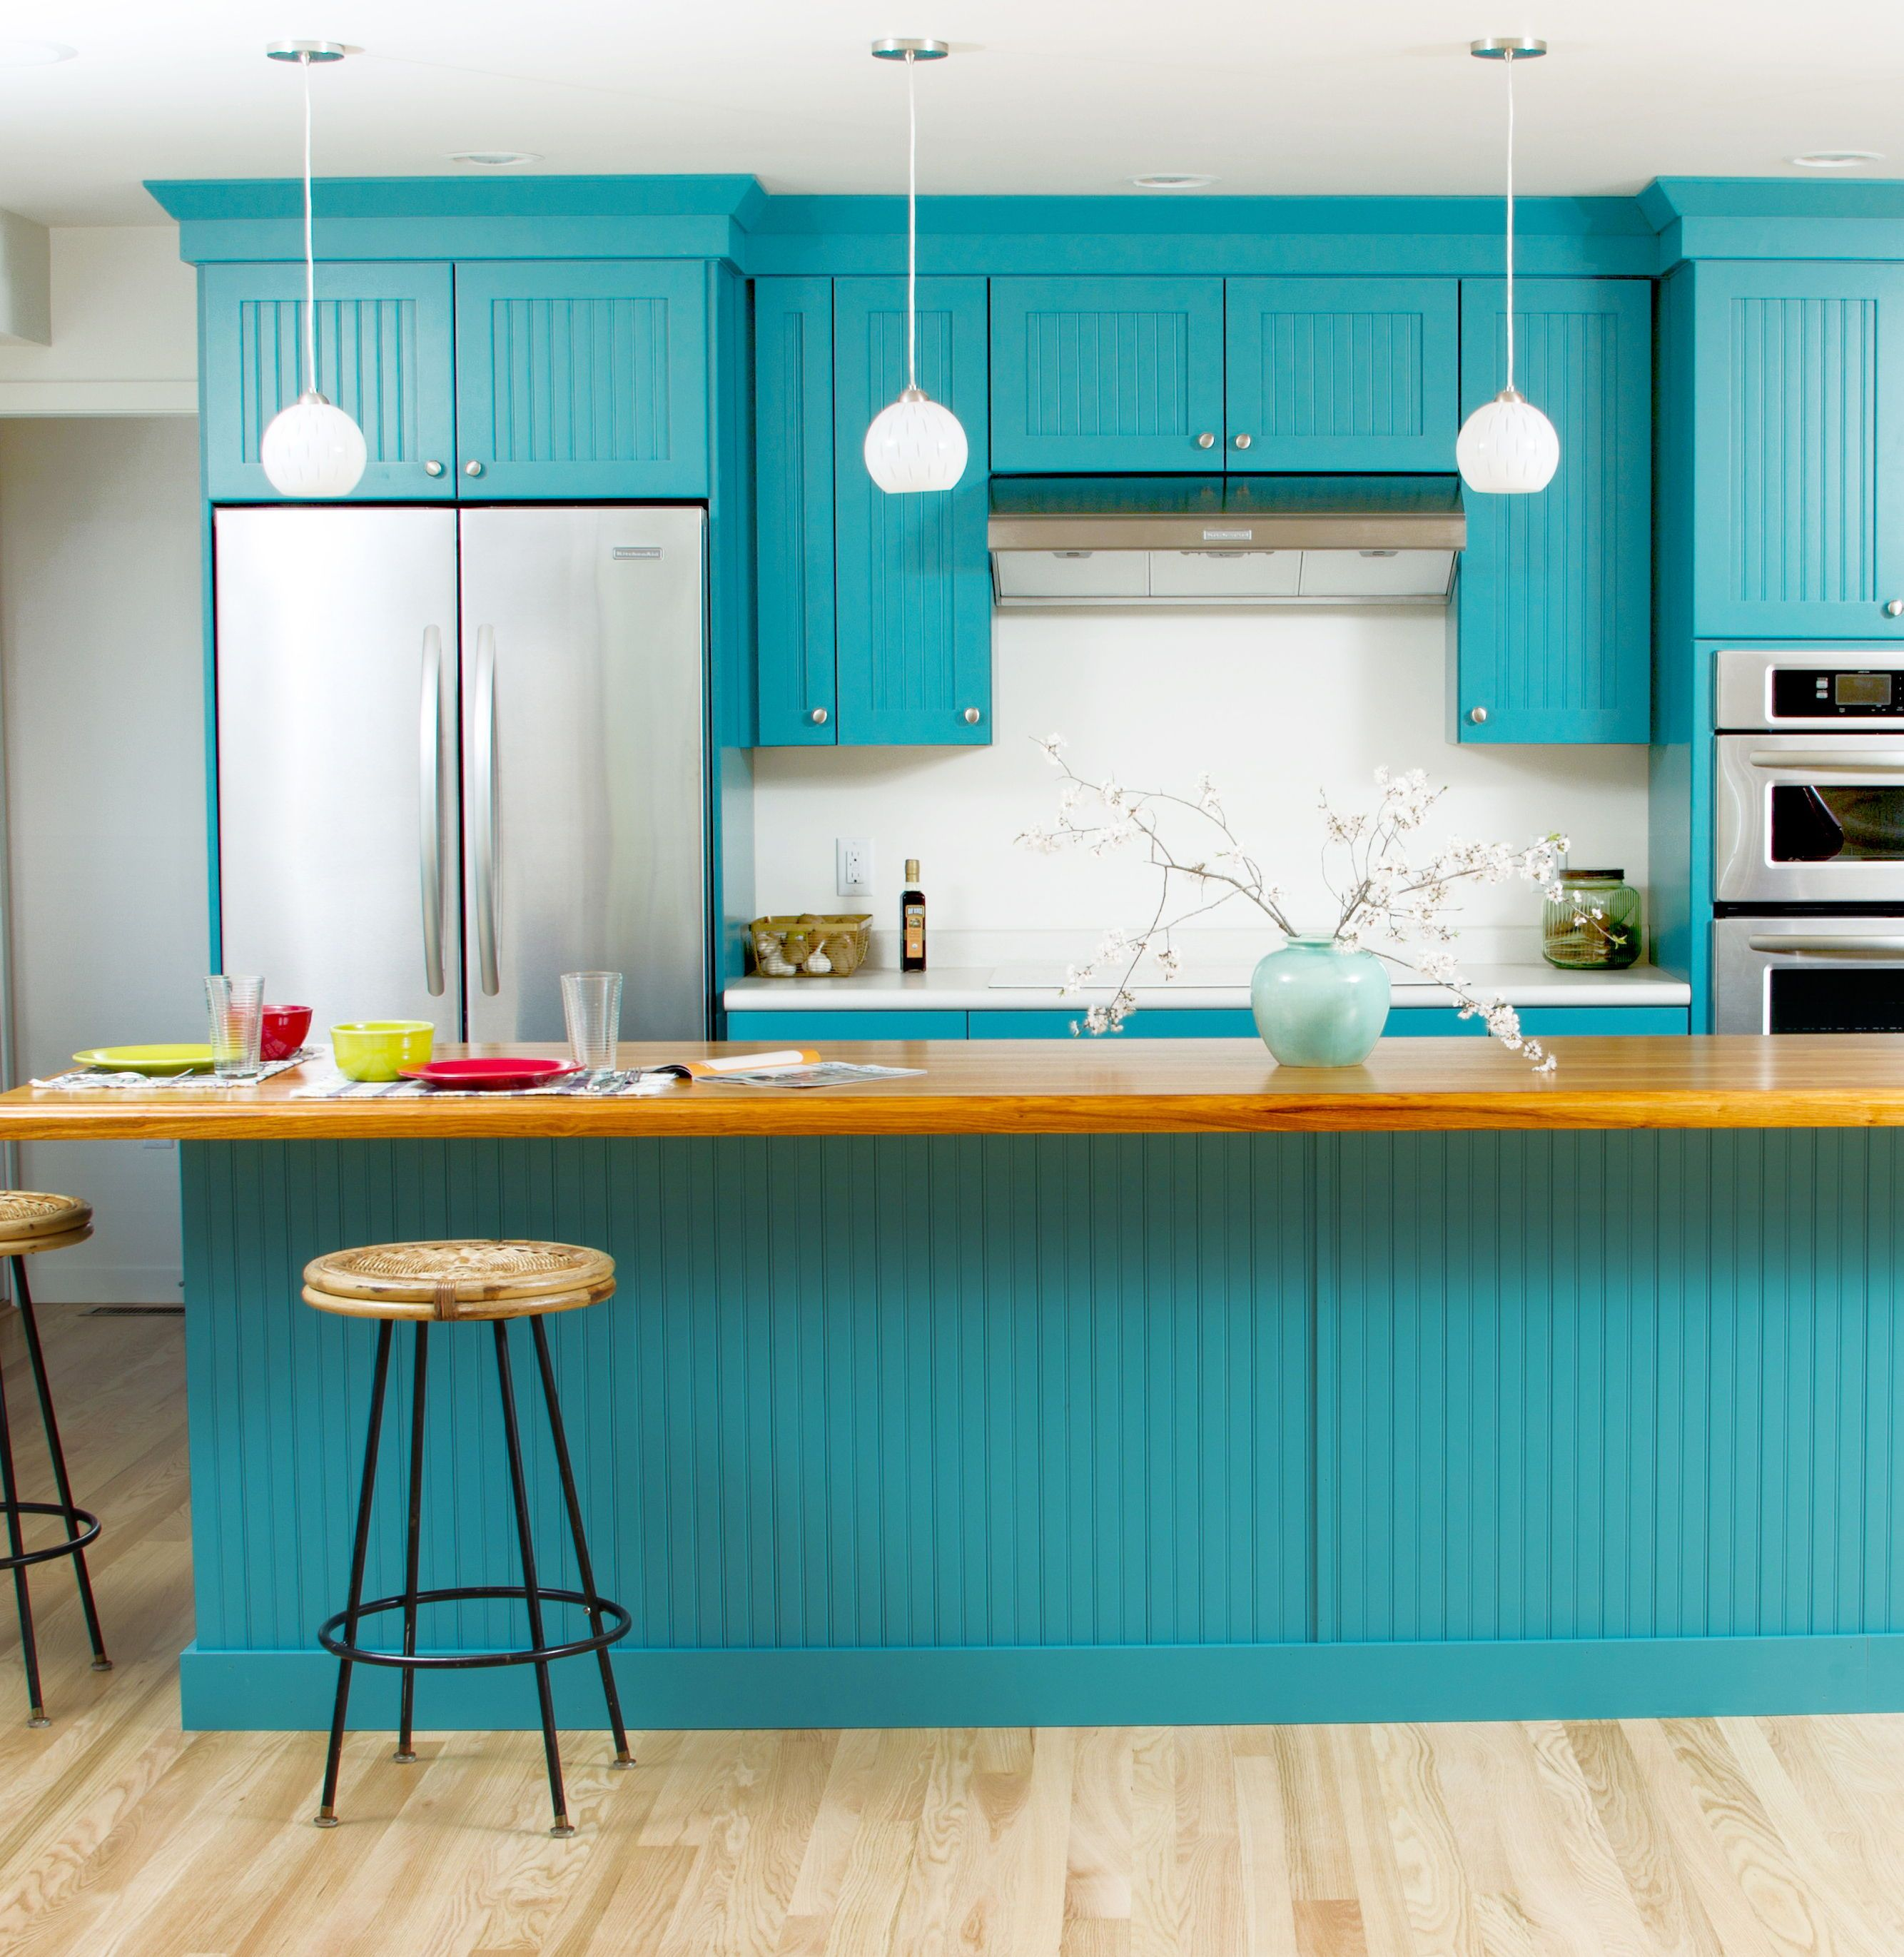 Why Not A Blue Kitchen Bold And Bright Blue Cottage Styled Kitchen Design By Designer Diana Teal Kitchen Cabinets Teal Kitchen Blue Painted Kitchen Cabinets